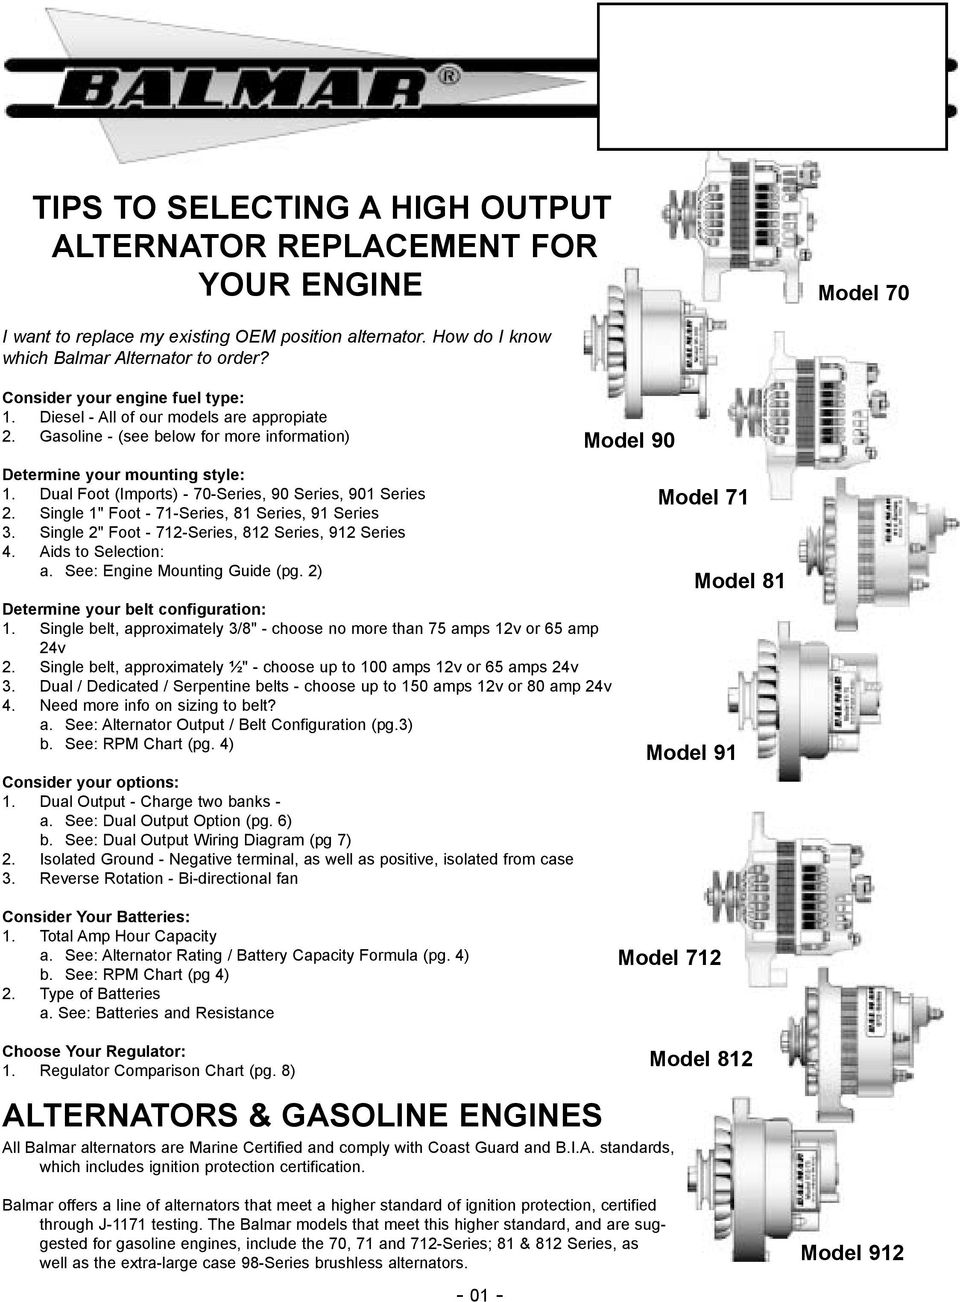 Tips To Selecting A High Output Alternator Replacement For Your Understand How Wire Up The 3 Dual Foot Imports 70 Series 90 901 2